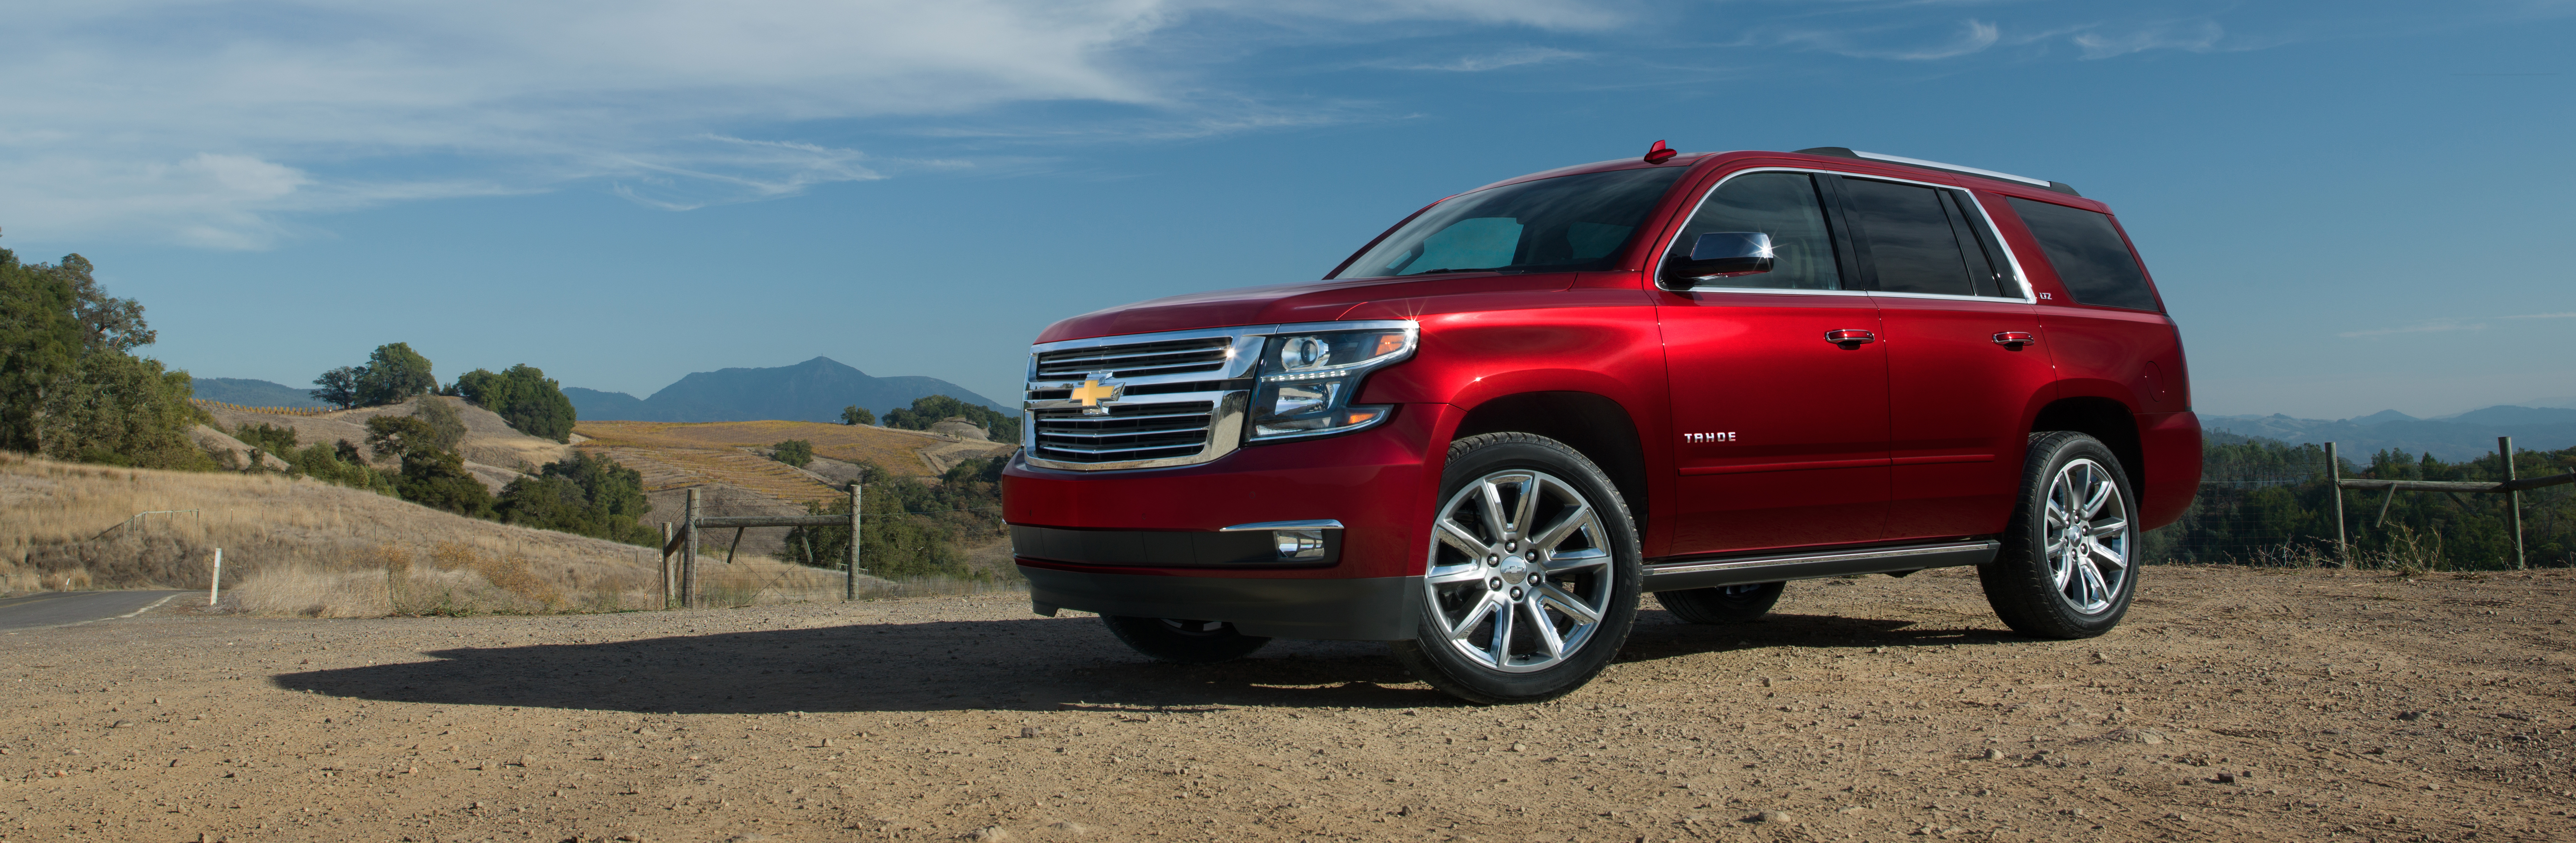 Fred Caldwell Chevrolet Your Carolina Chevy Dealers